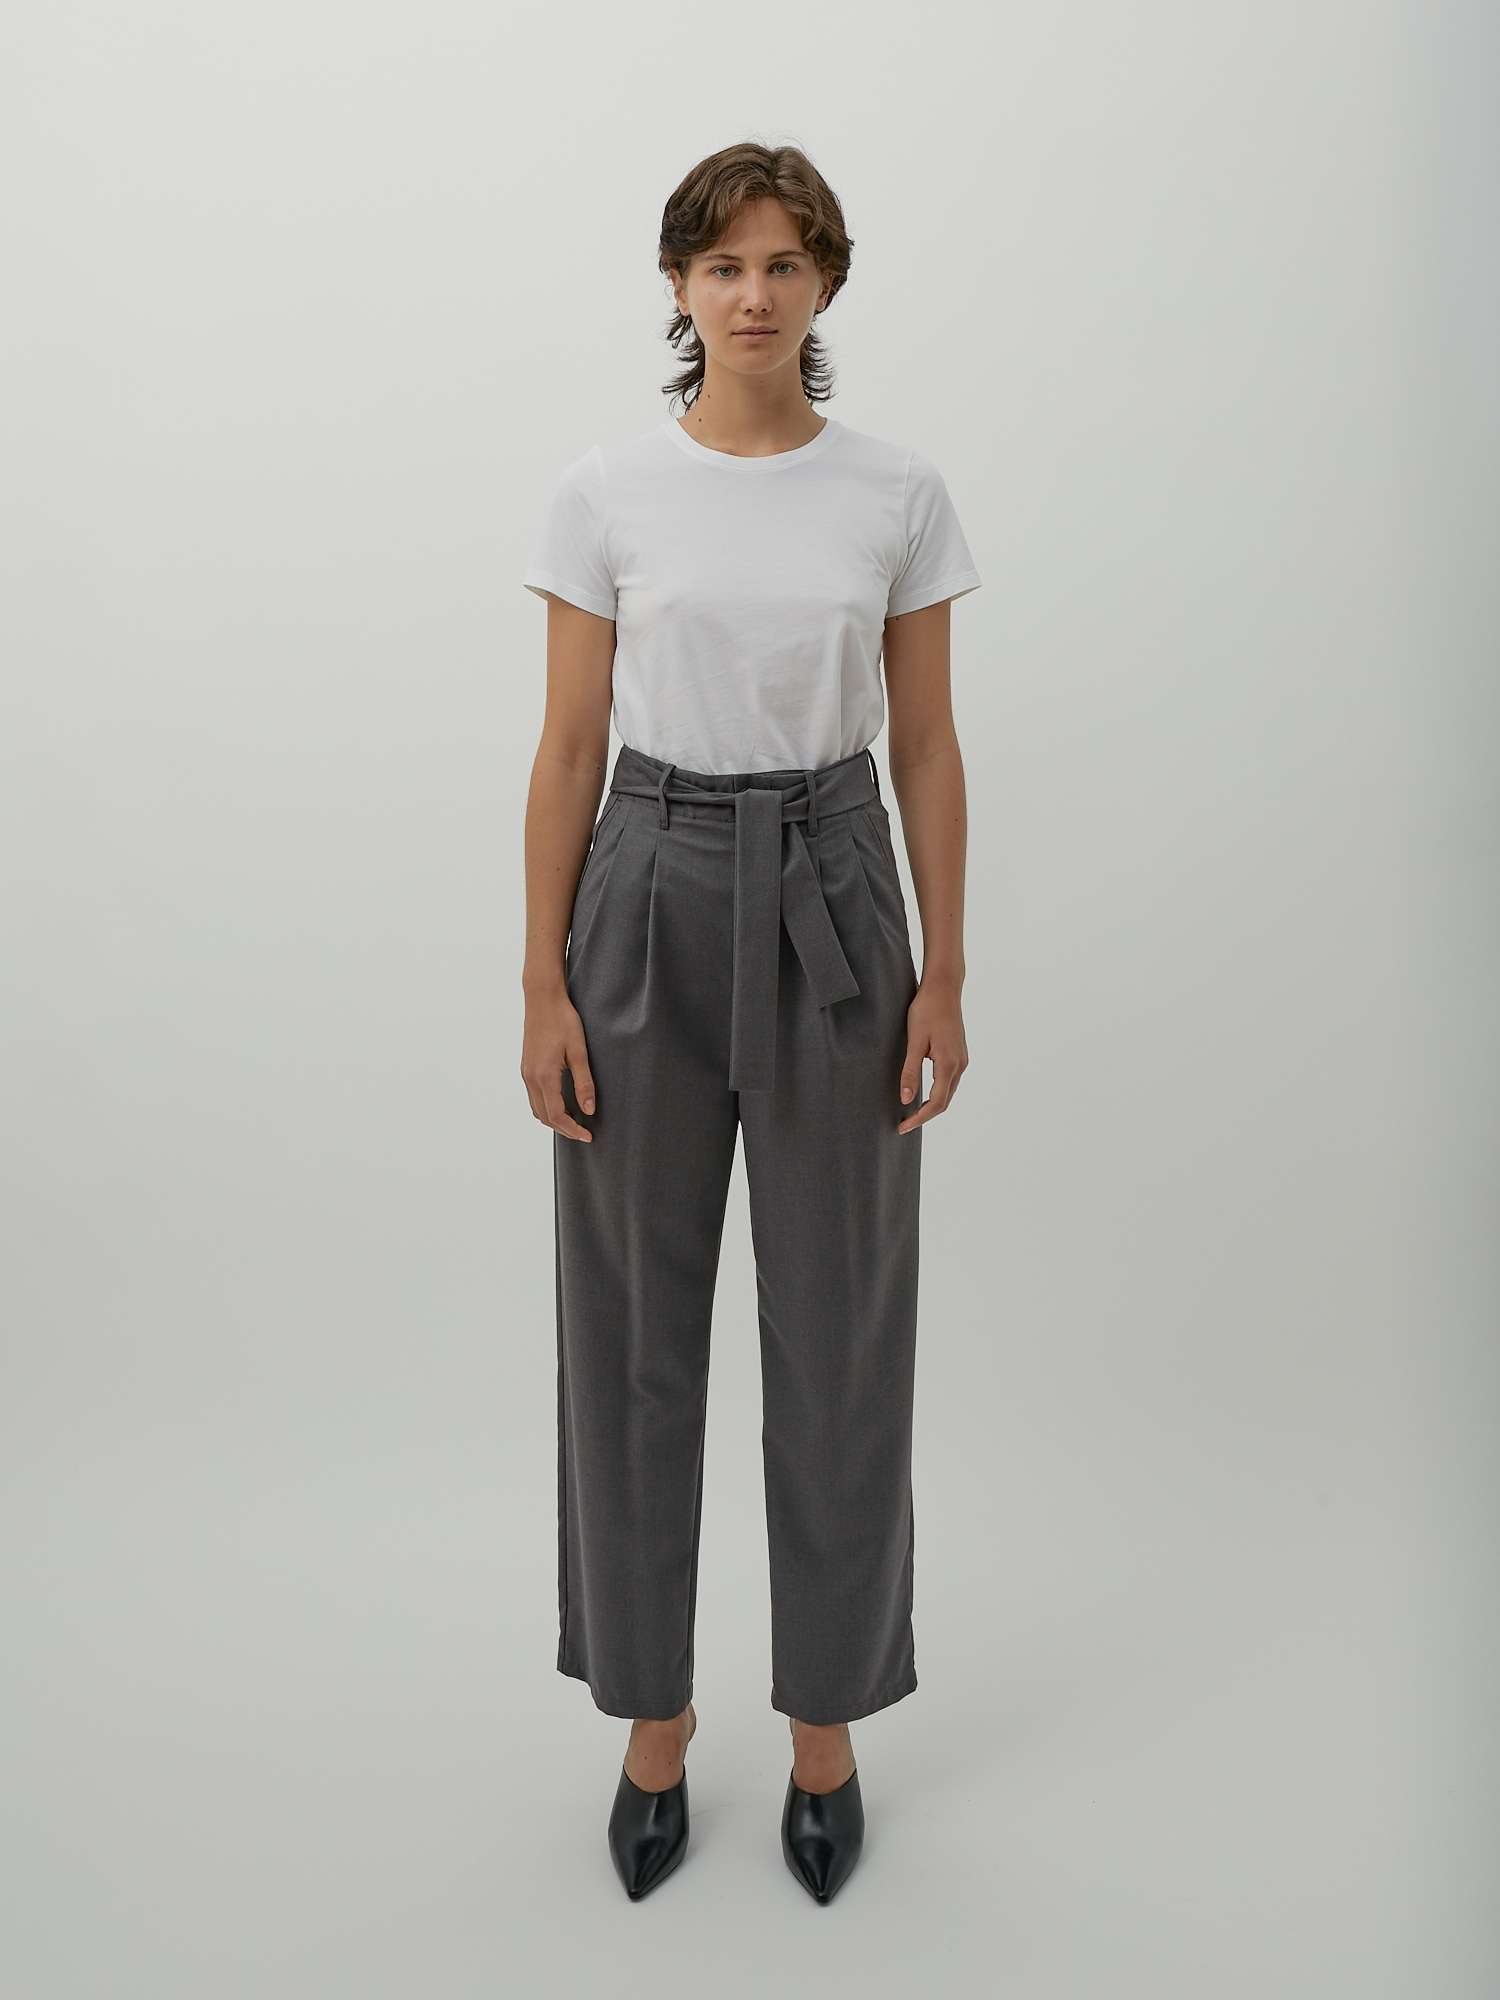 Shop Designer High Waisted Wide Leg Pants